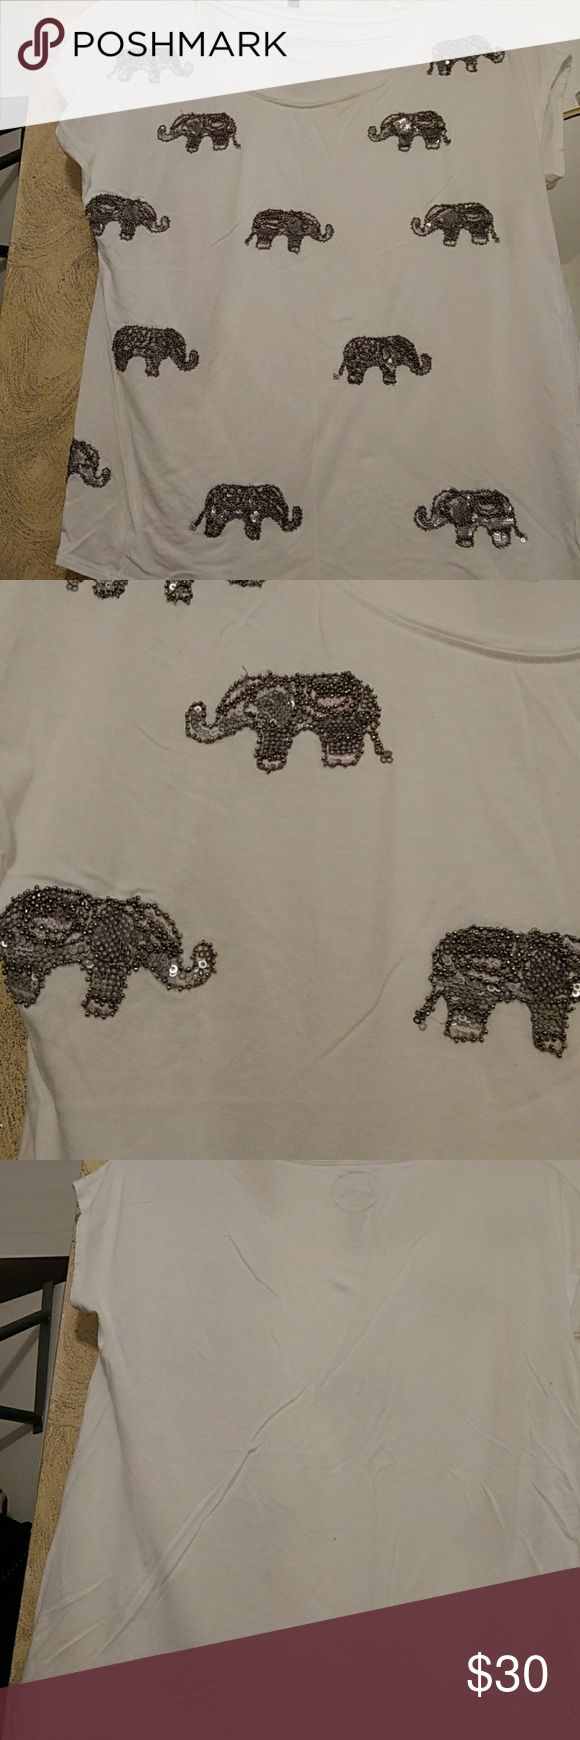 Elephant sequin shirt This is a gray elephant sequin shirt definitely a statement maker only worn a few times INC International Concepts Tops